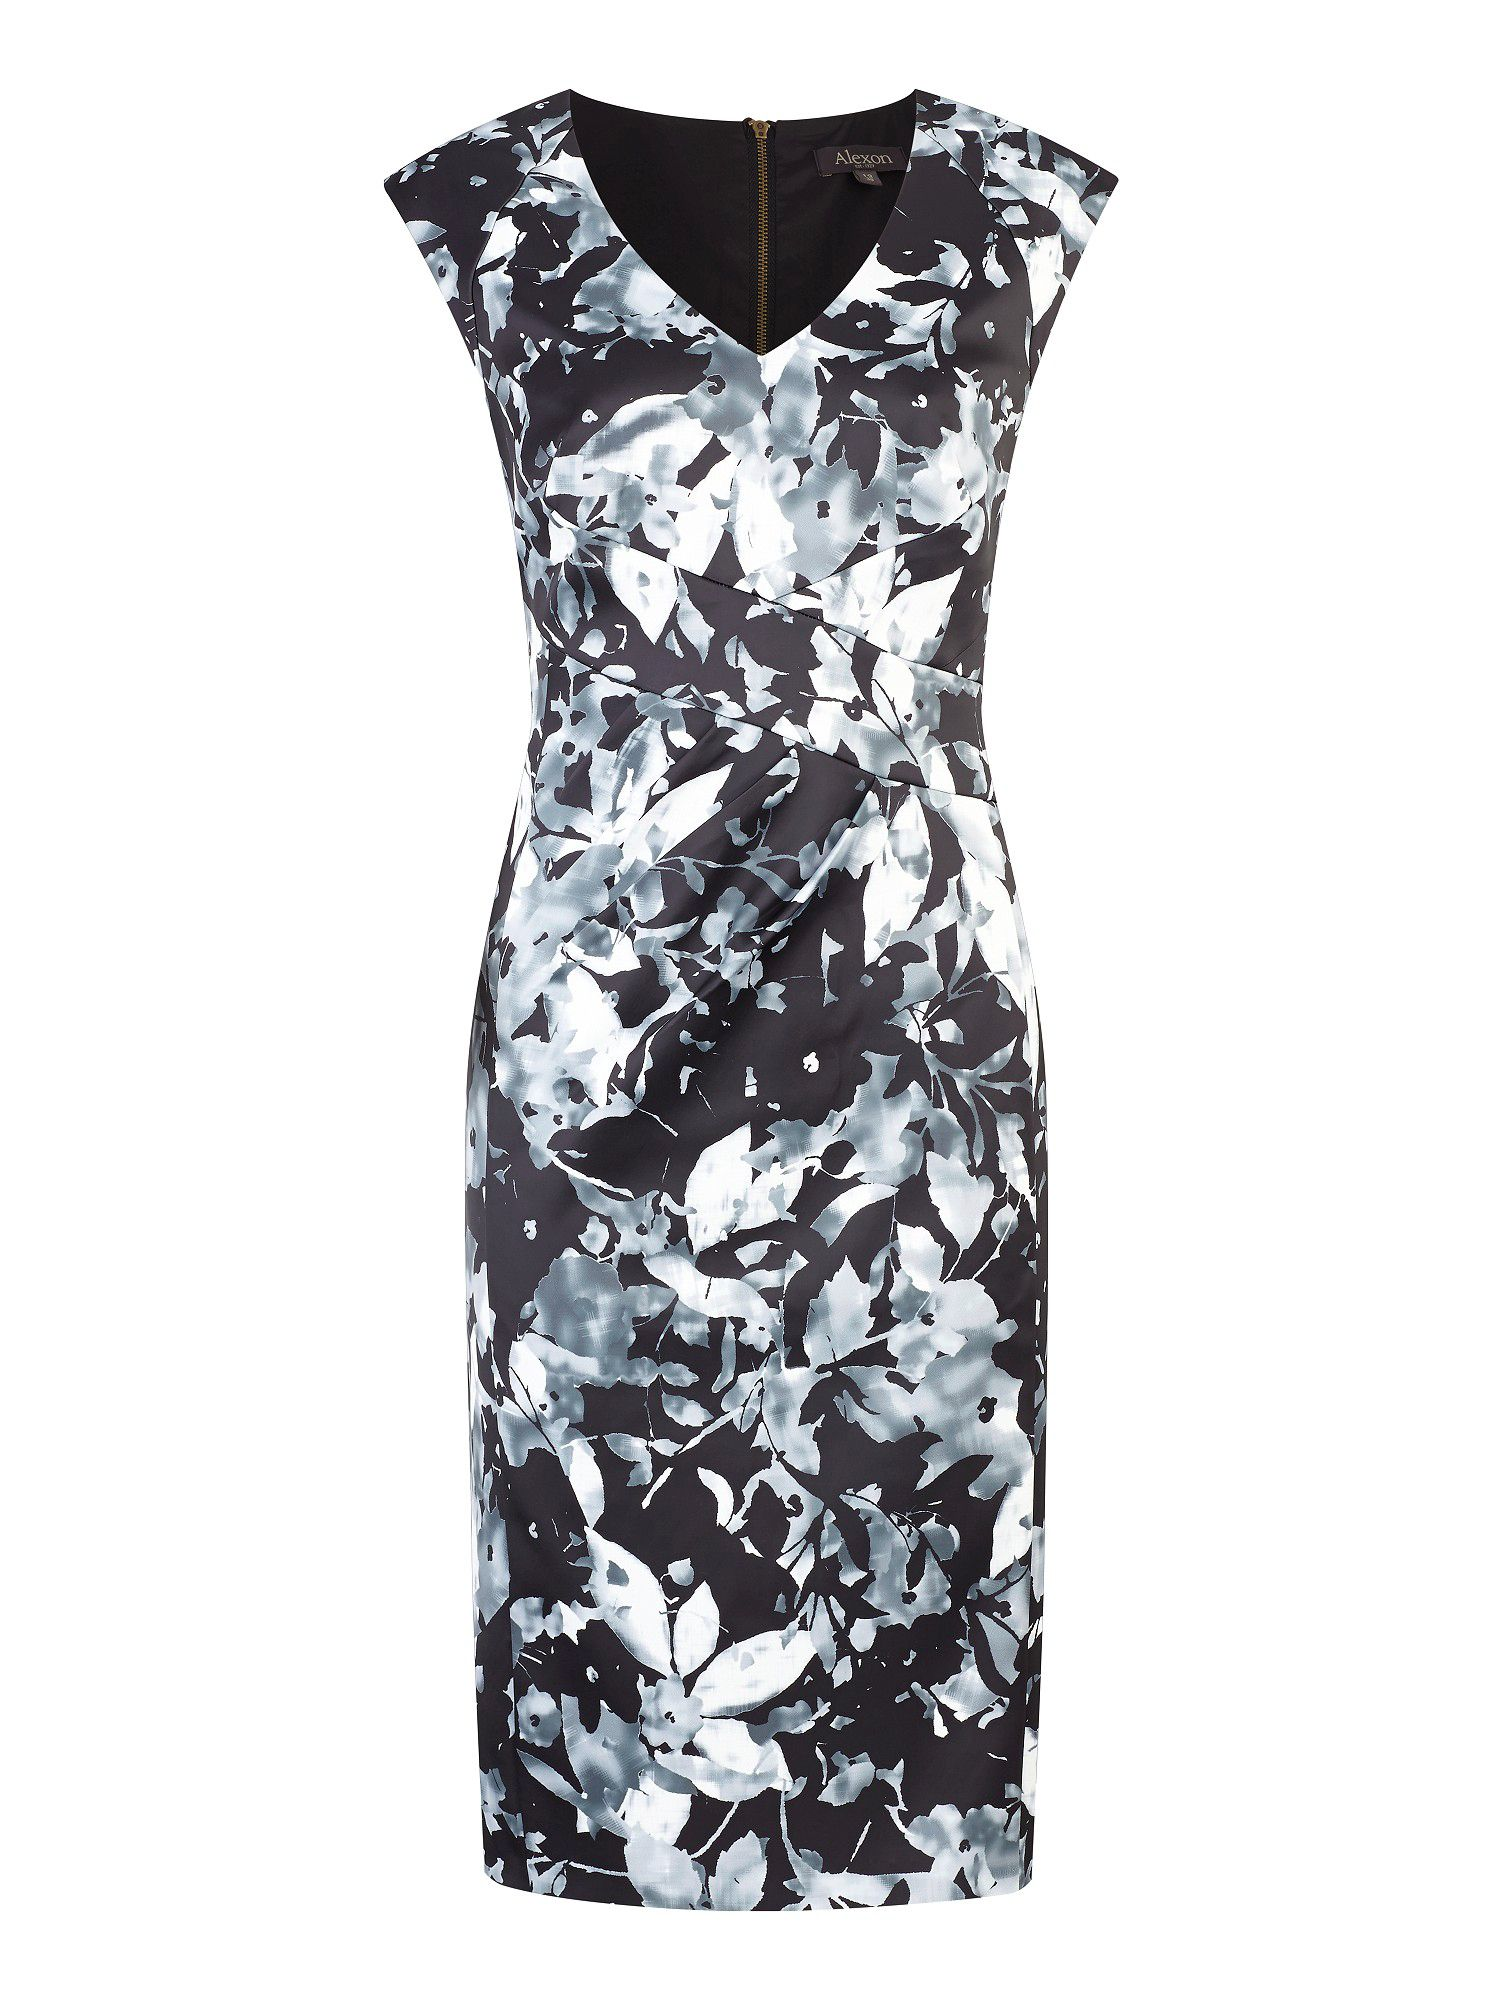 Monochrome sateen print dress